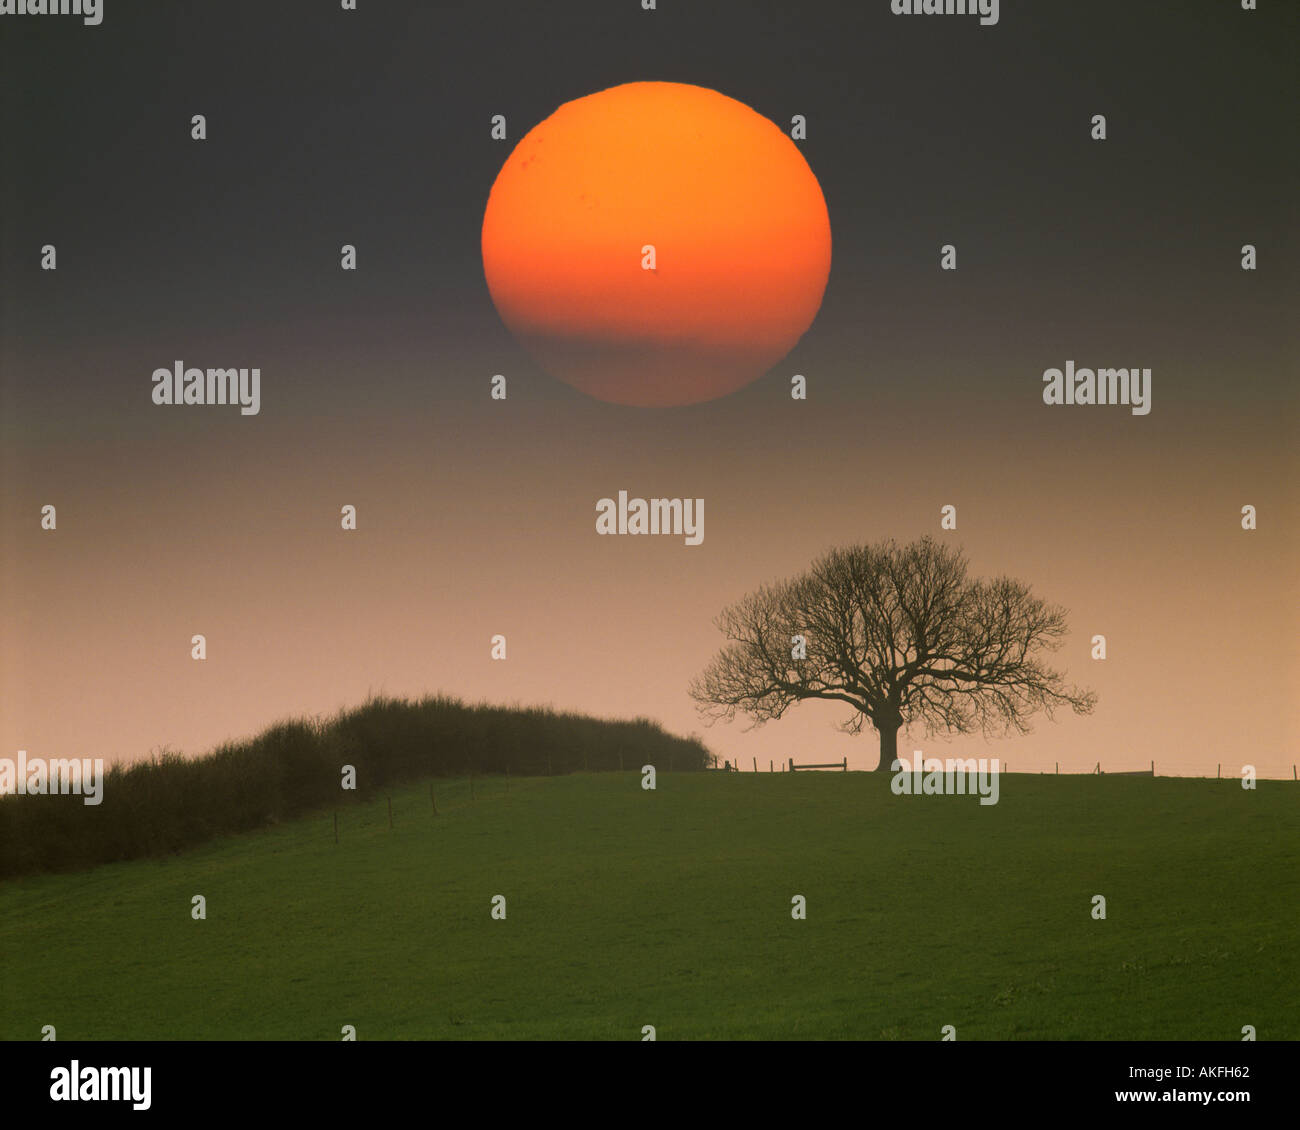 GB - BEDFORDSHIRE: Single Tree with Sun near Woburn - Stock Image